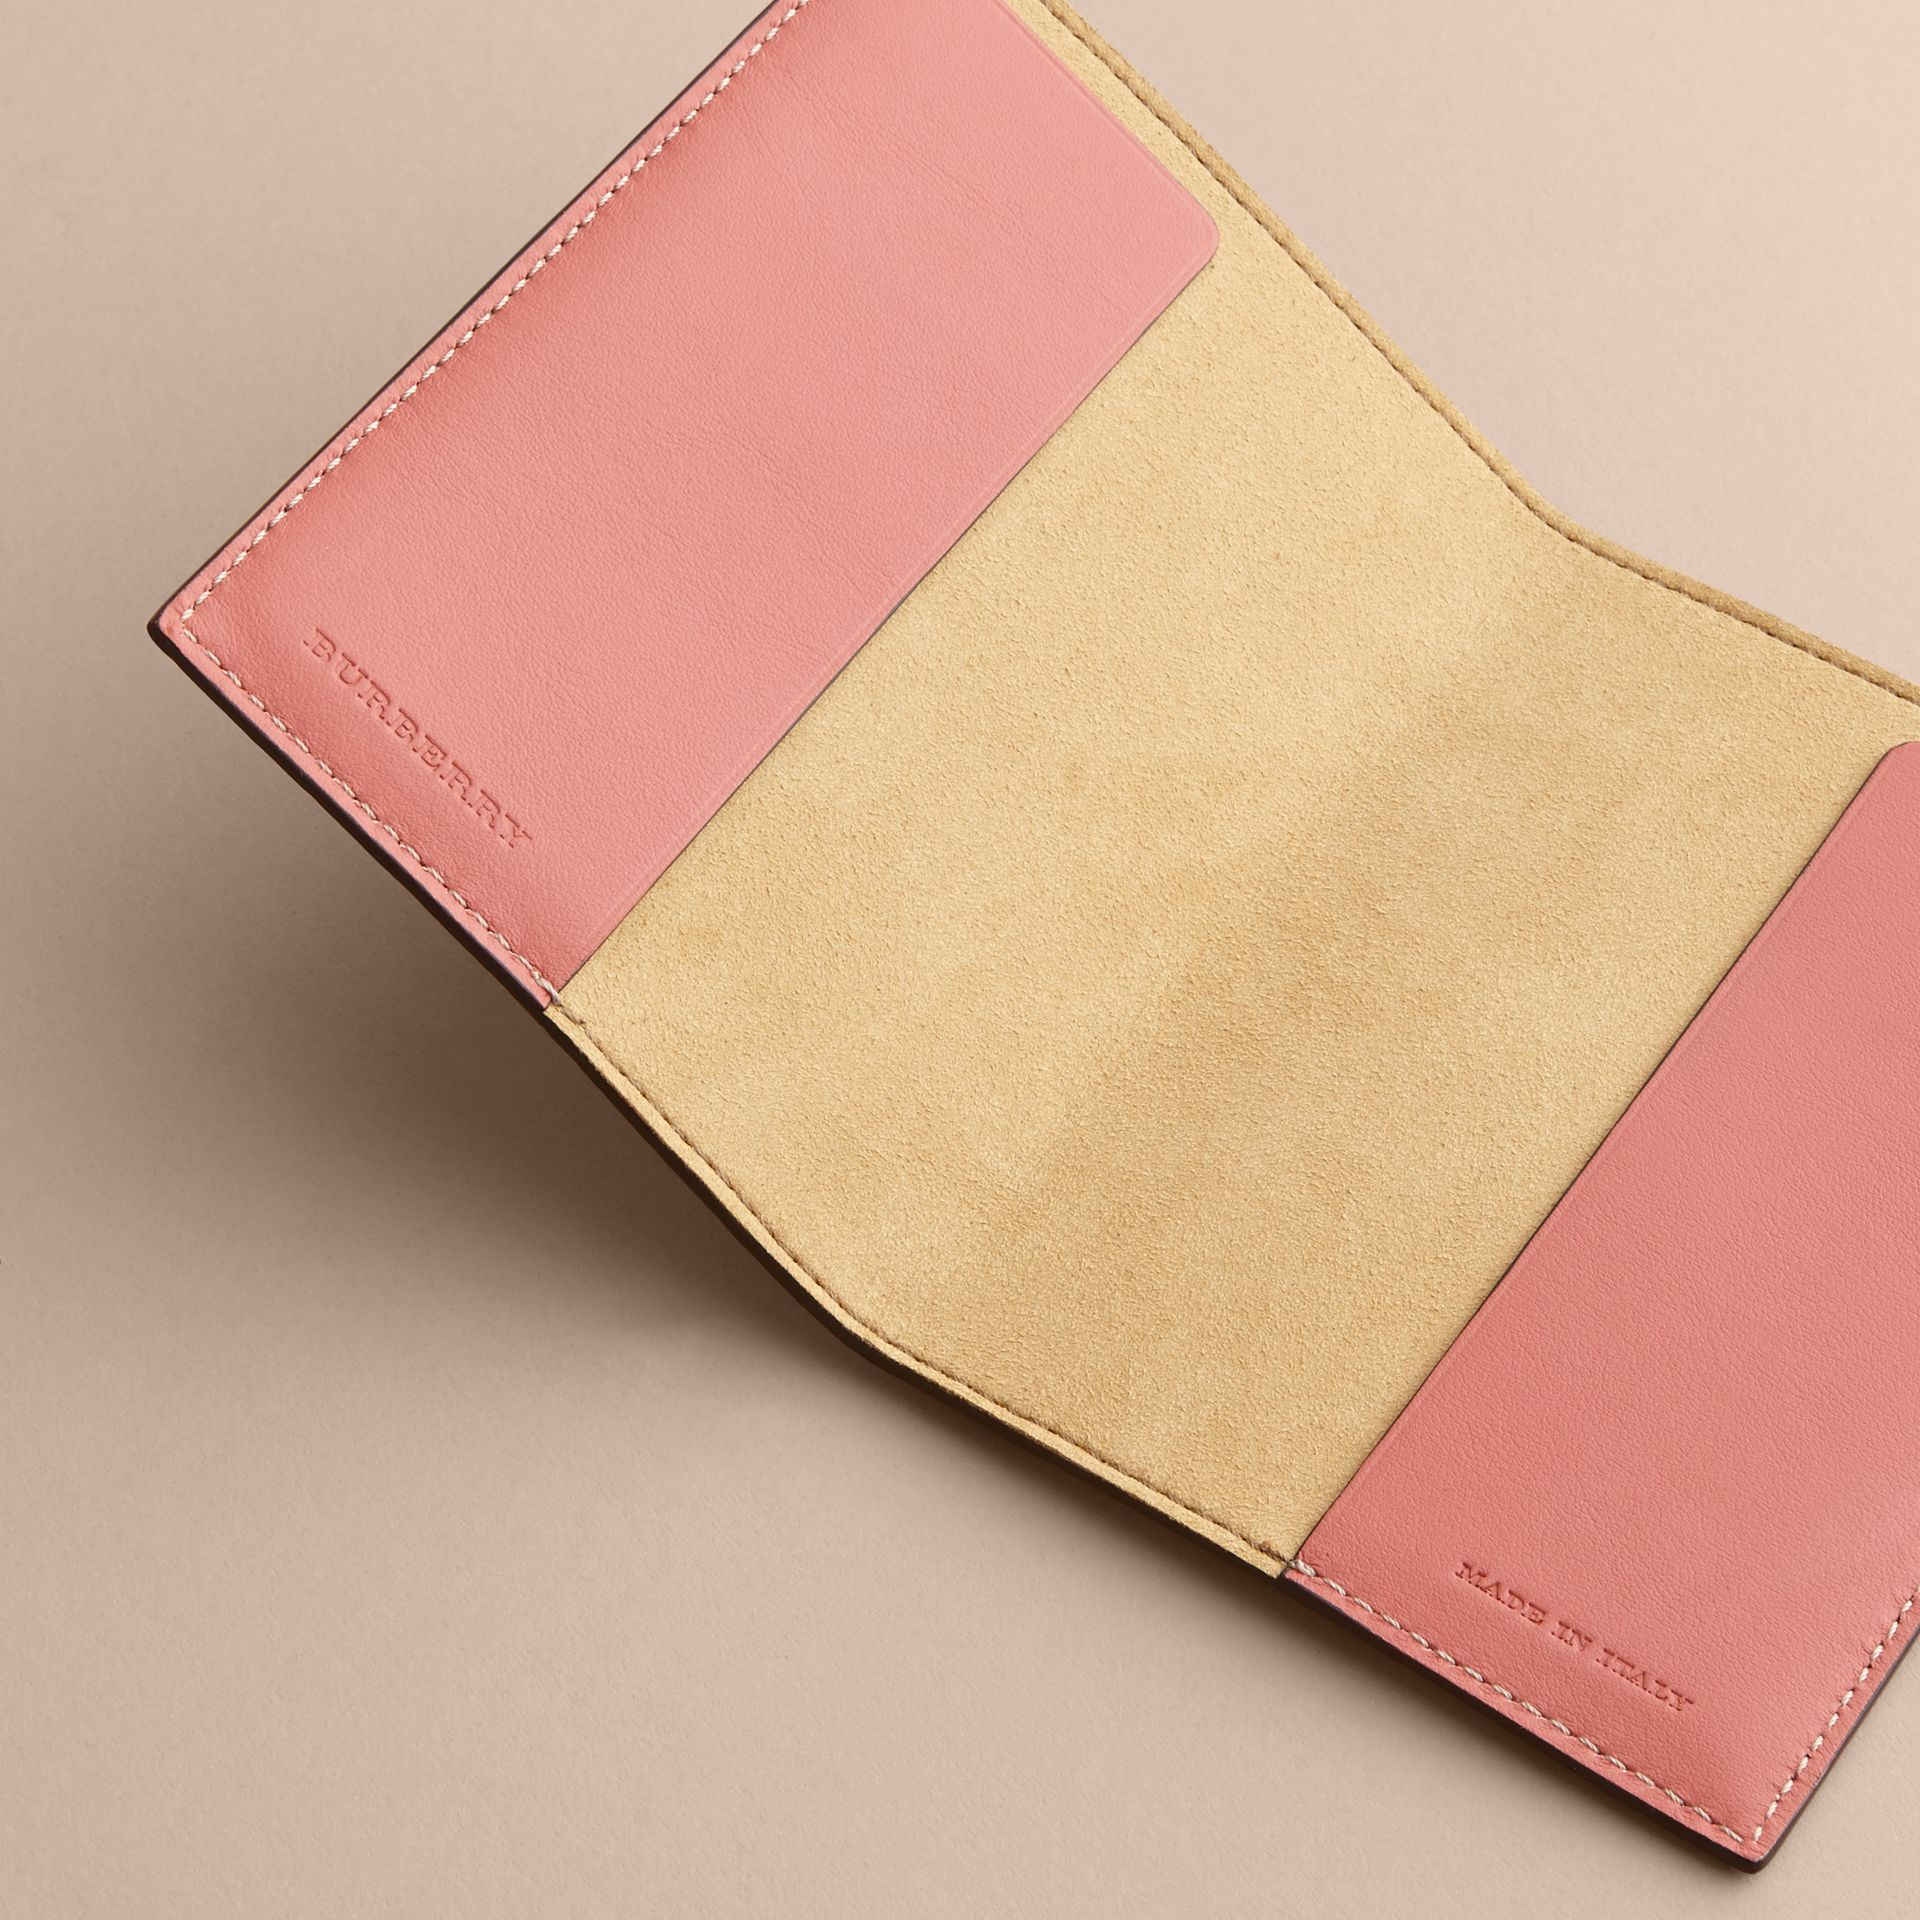 Peony Rose Print Leather Passport Cover in Natural / Emerald Green | Burberry - gallery image 4